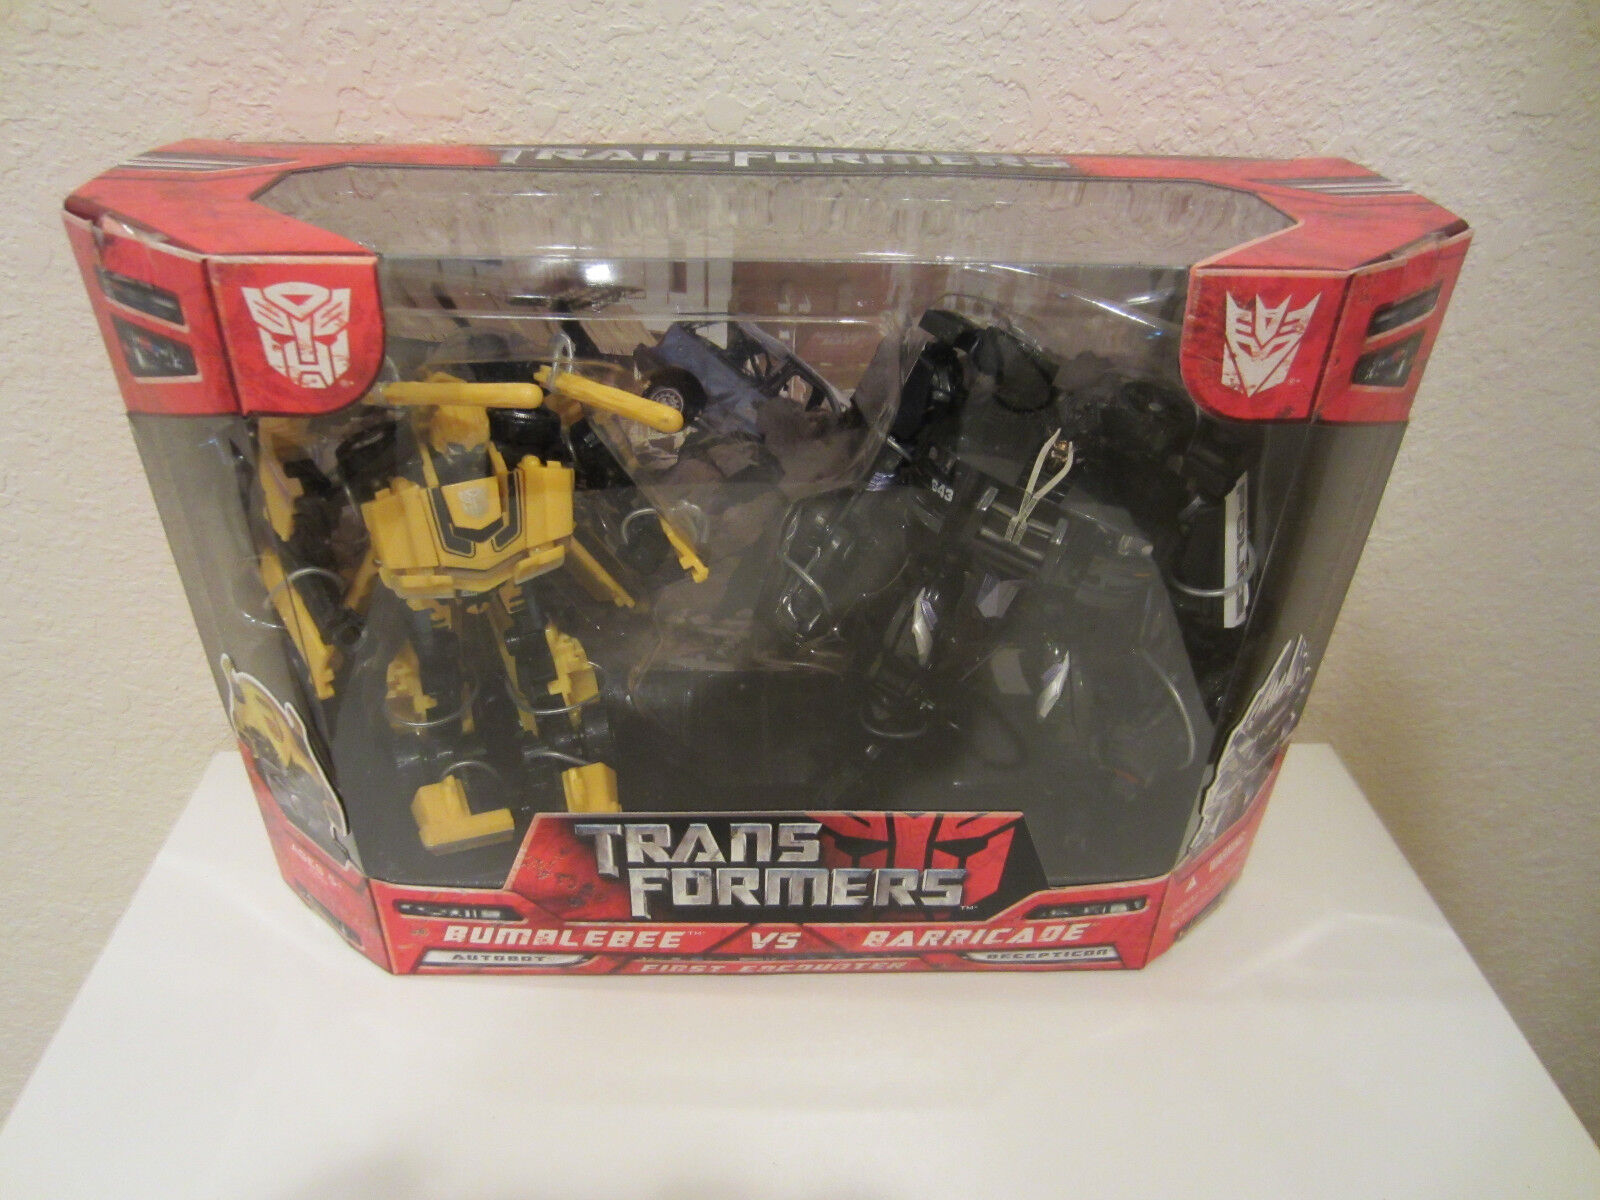 Transformers 2007 movie first encounter Bumblebee vs Barrie box set Comme neuf dans boîte scellée NEUF